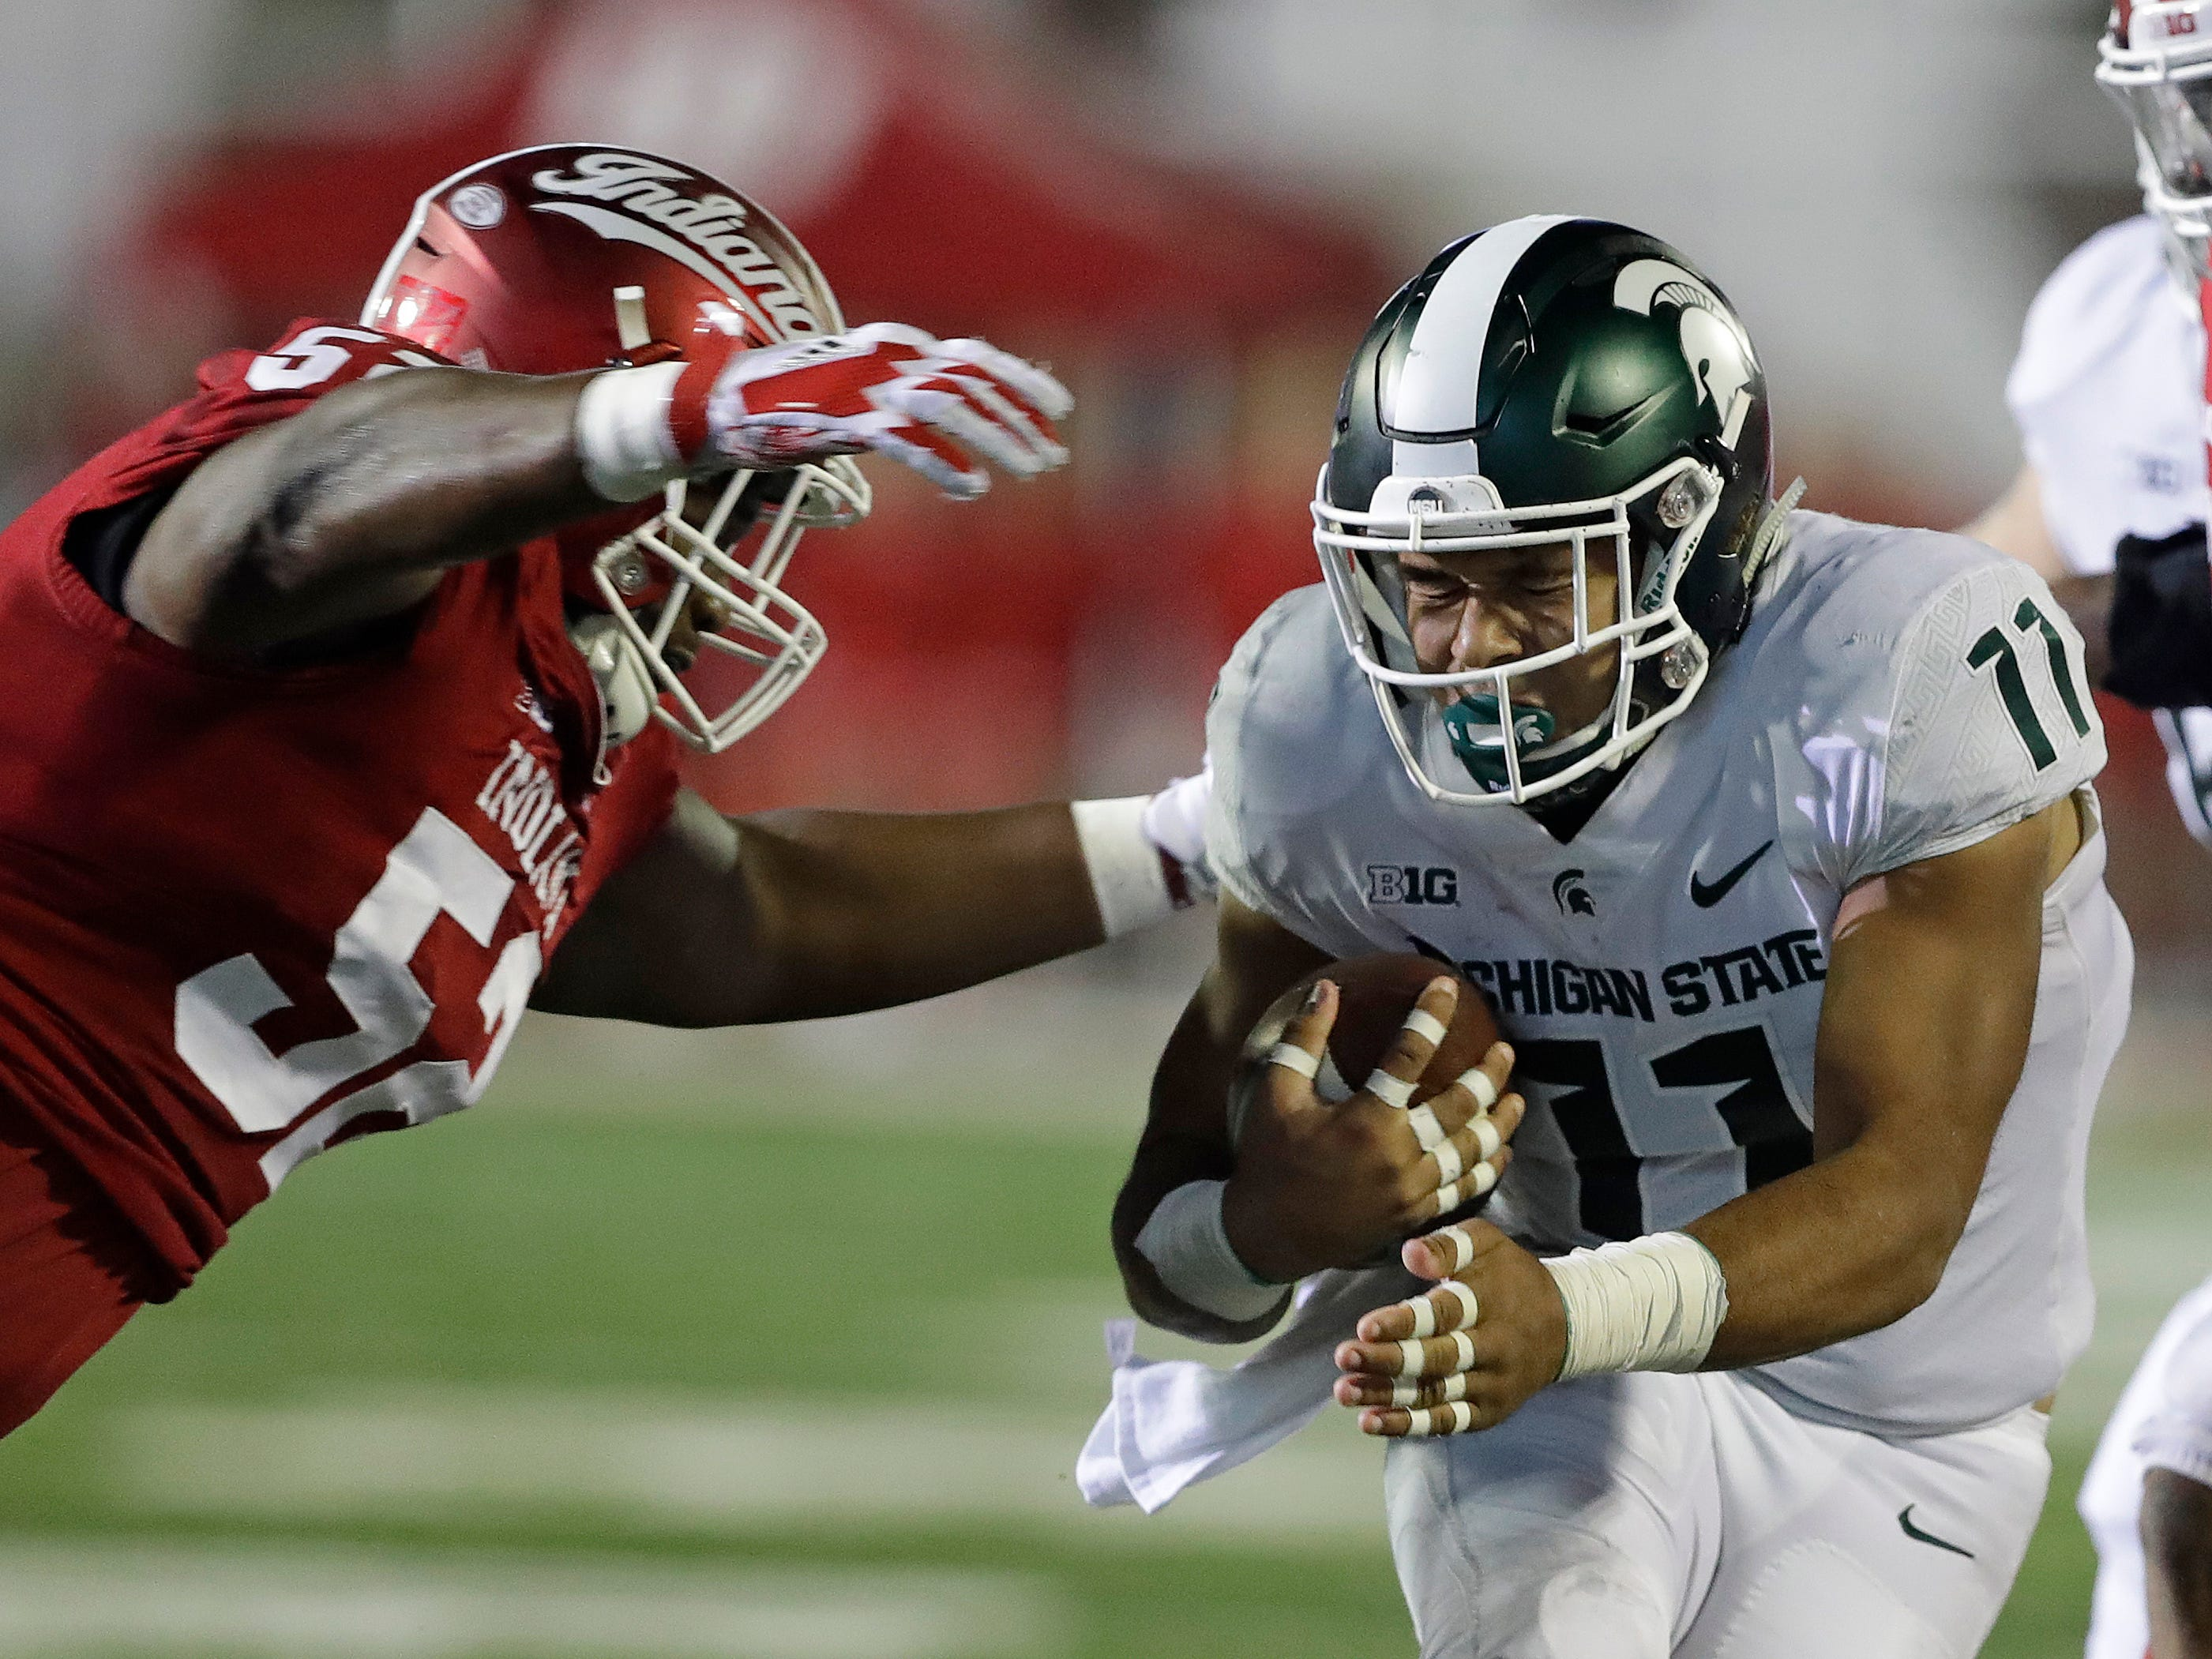 Michigan State running back Connor Heyward (11) is tackled by Indiana's Kayton Samuels during the second half of an NCAA college football game, Saturday, Sept. 22, 2018, in Bloomington, Ind. Michigan State won 35-21.